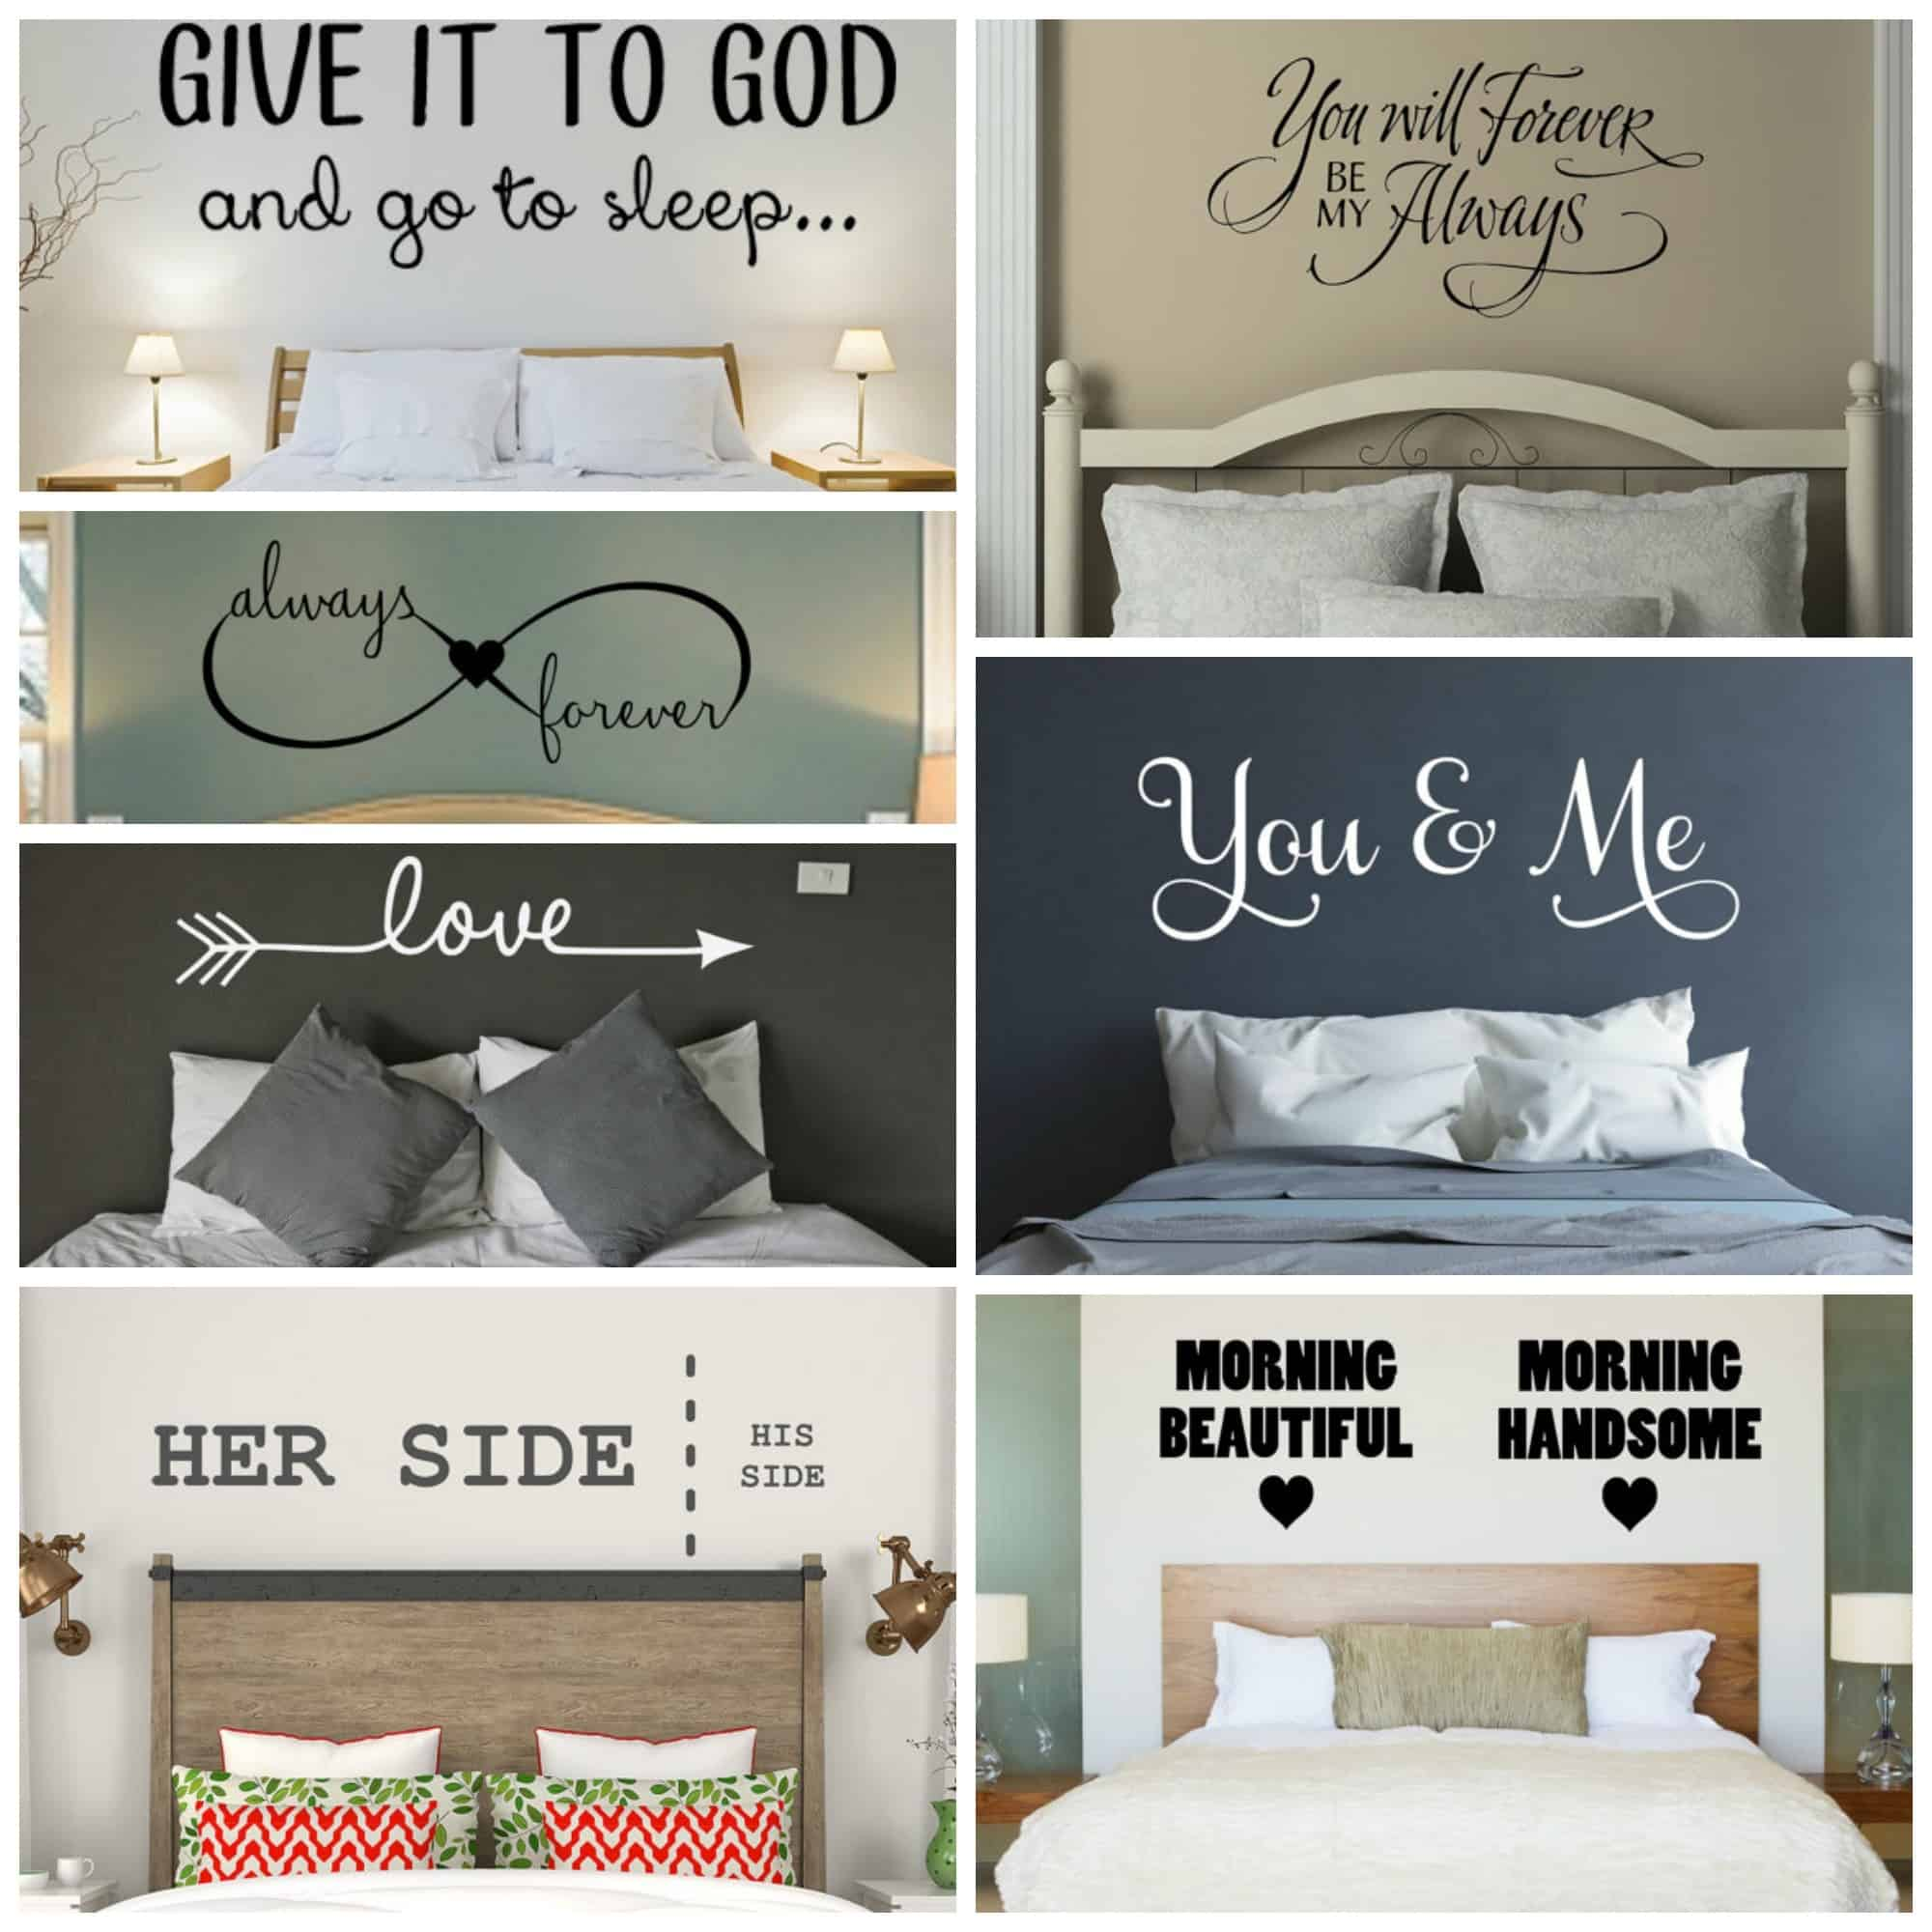 from Inspiration Wall Signs, Lighthouse Decals, LEVinyl, Adnil Creations, Old Barn Rescue Company, Vinyl Written, and Adnil Creations